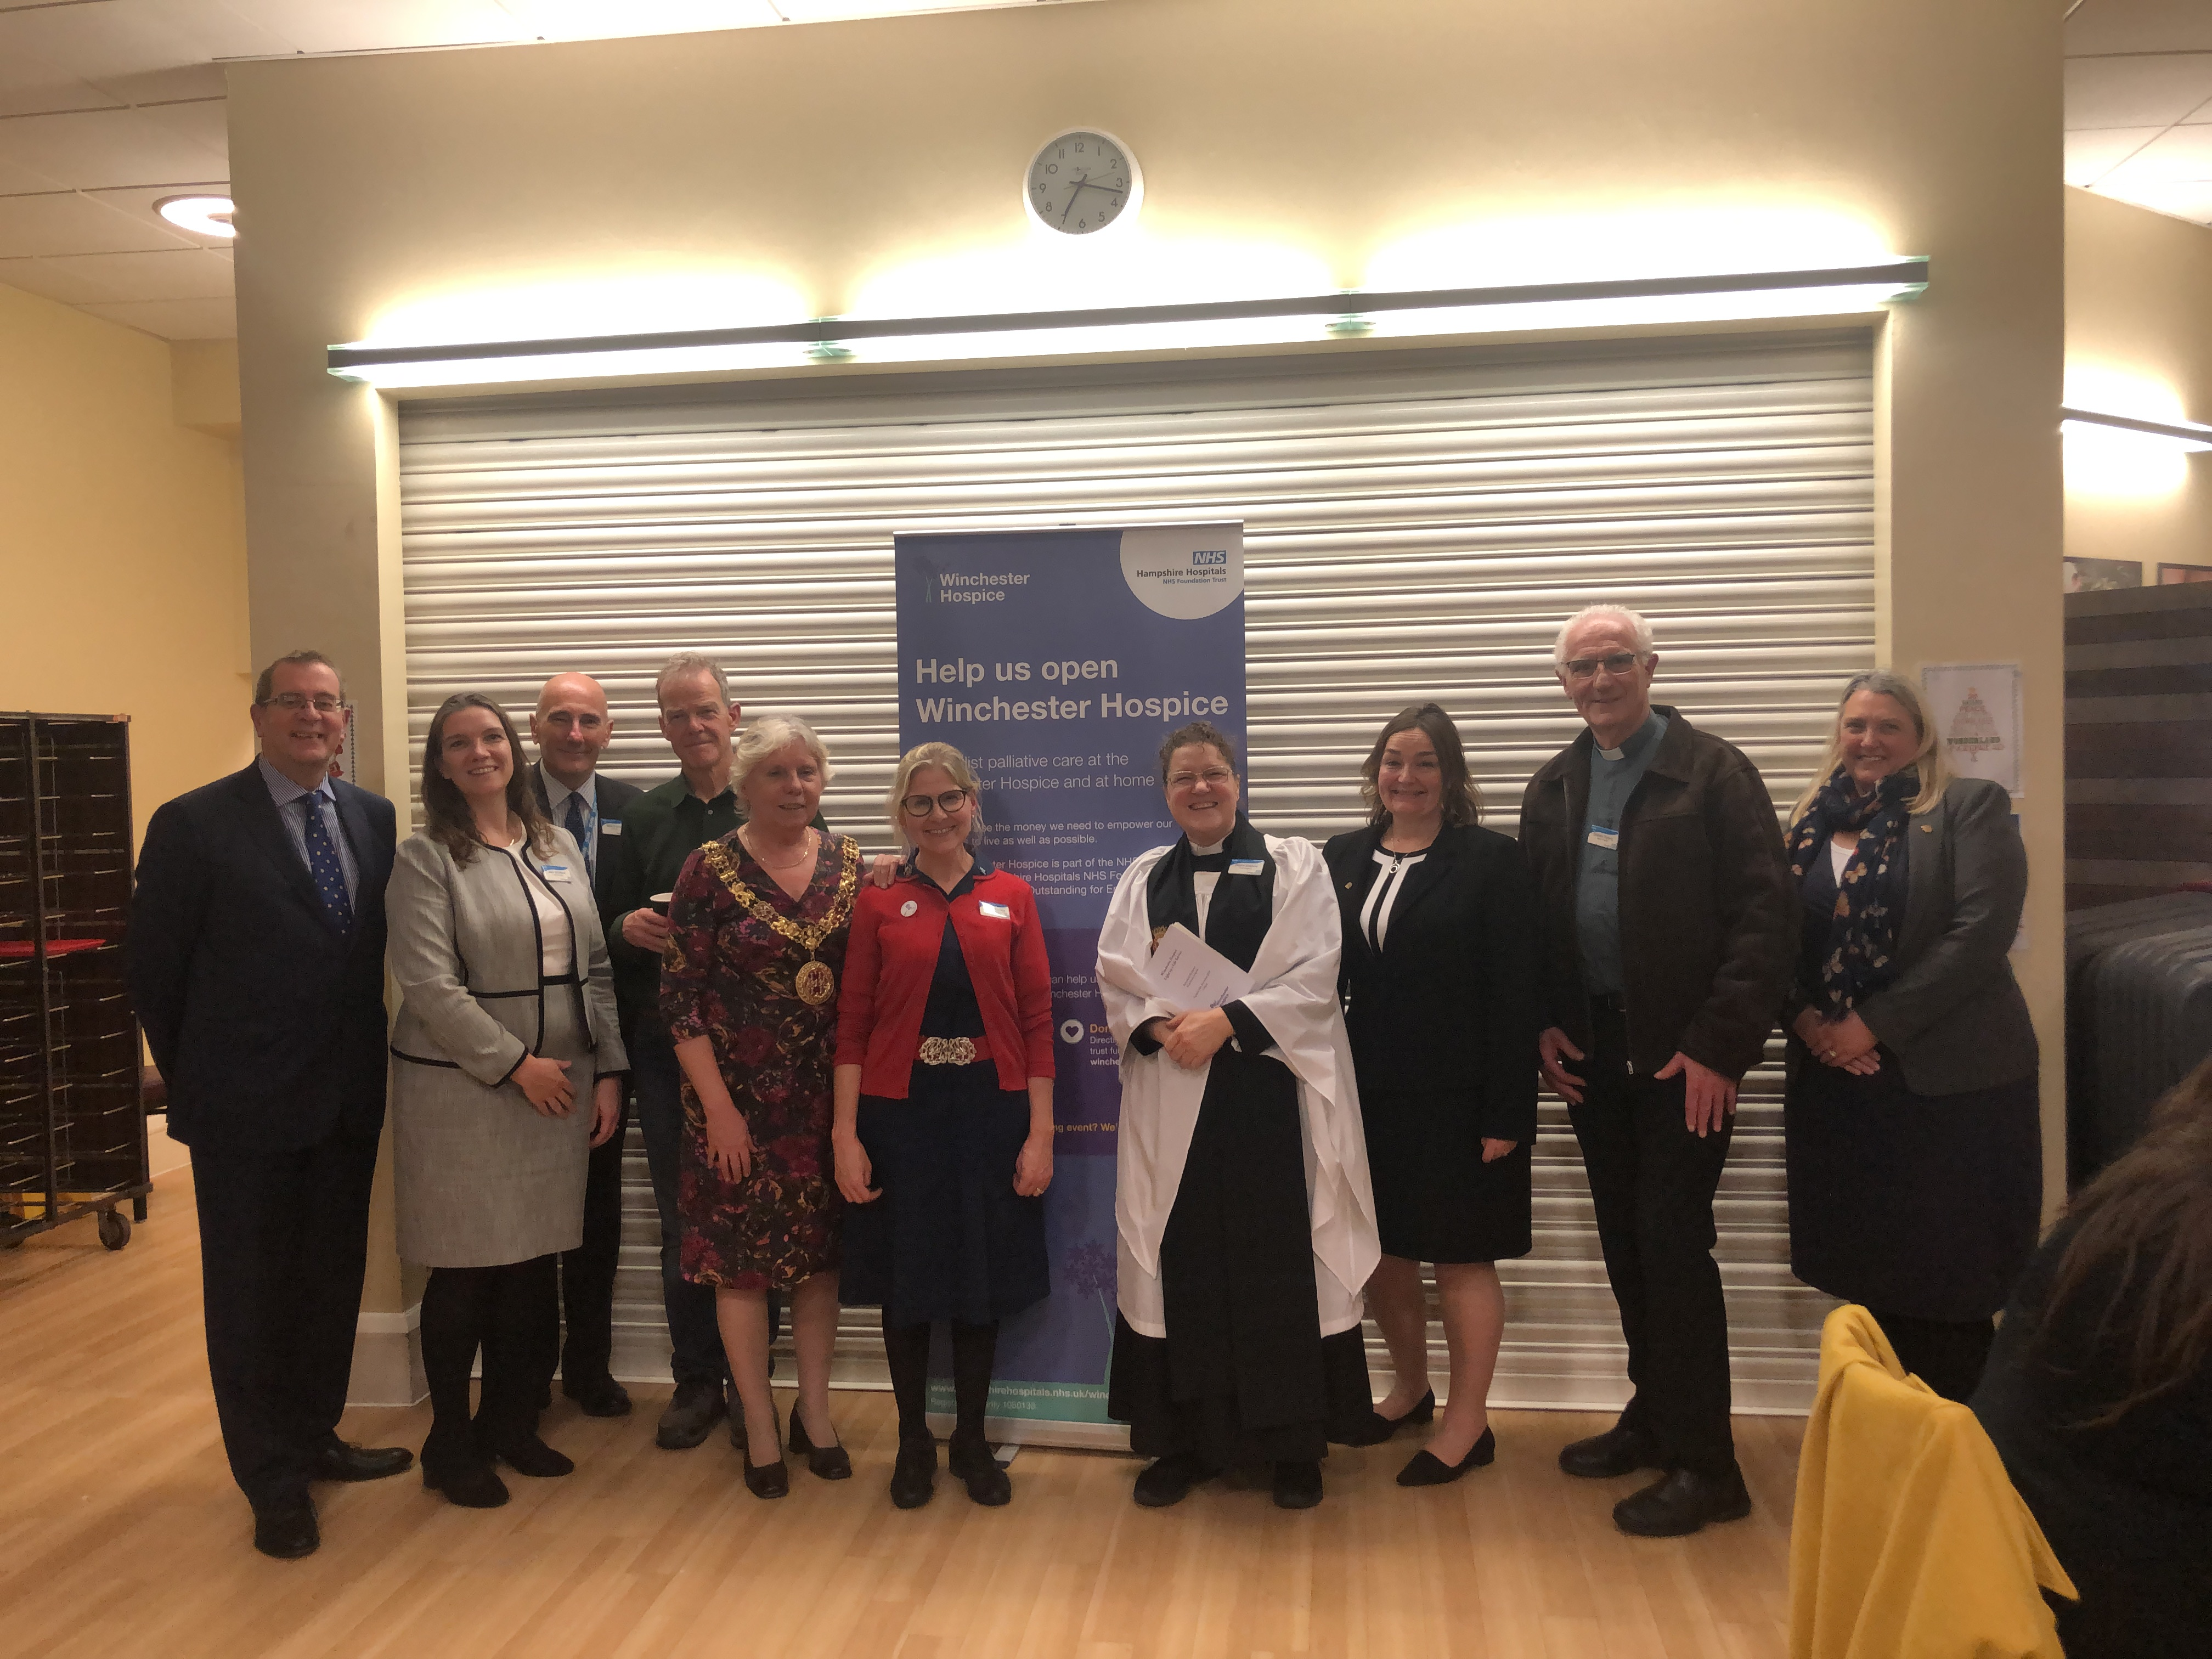 Winchester Hospice brings light to local community